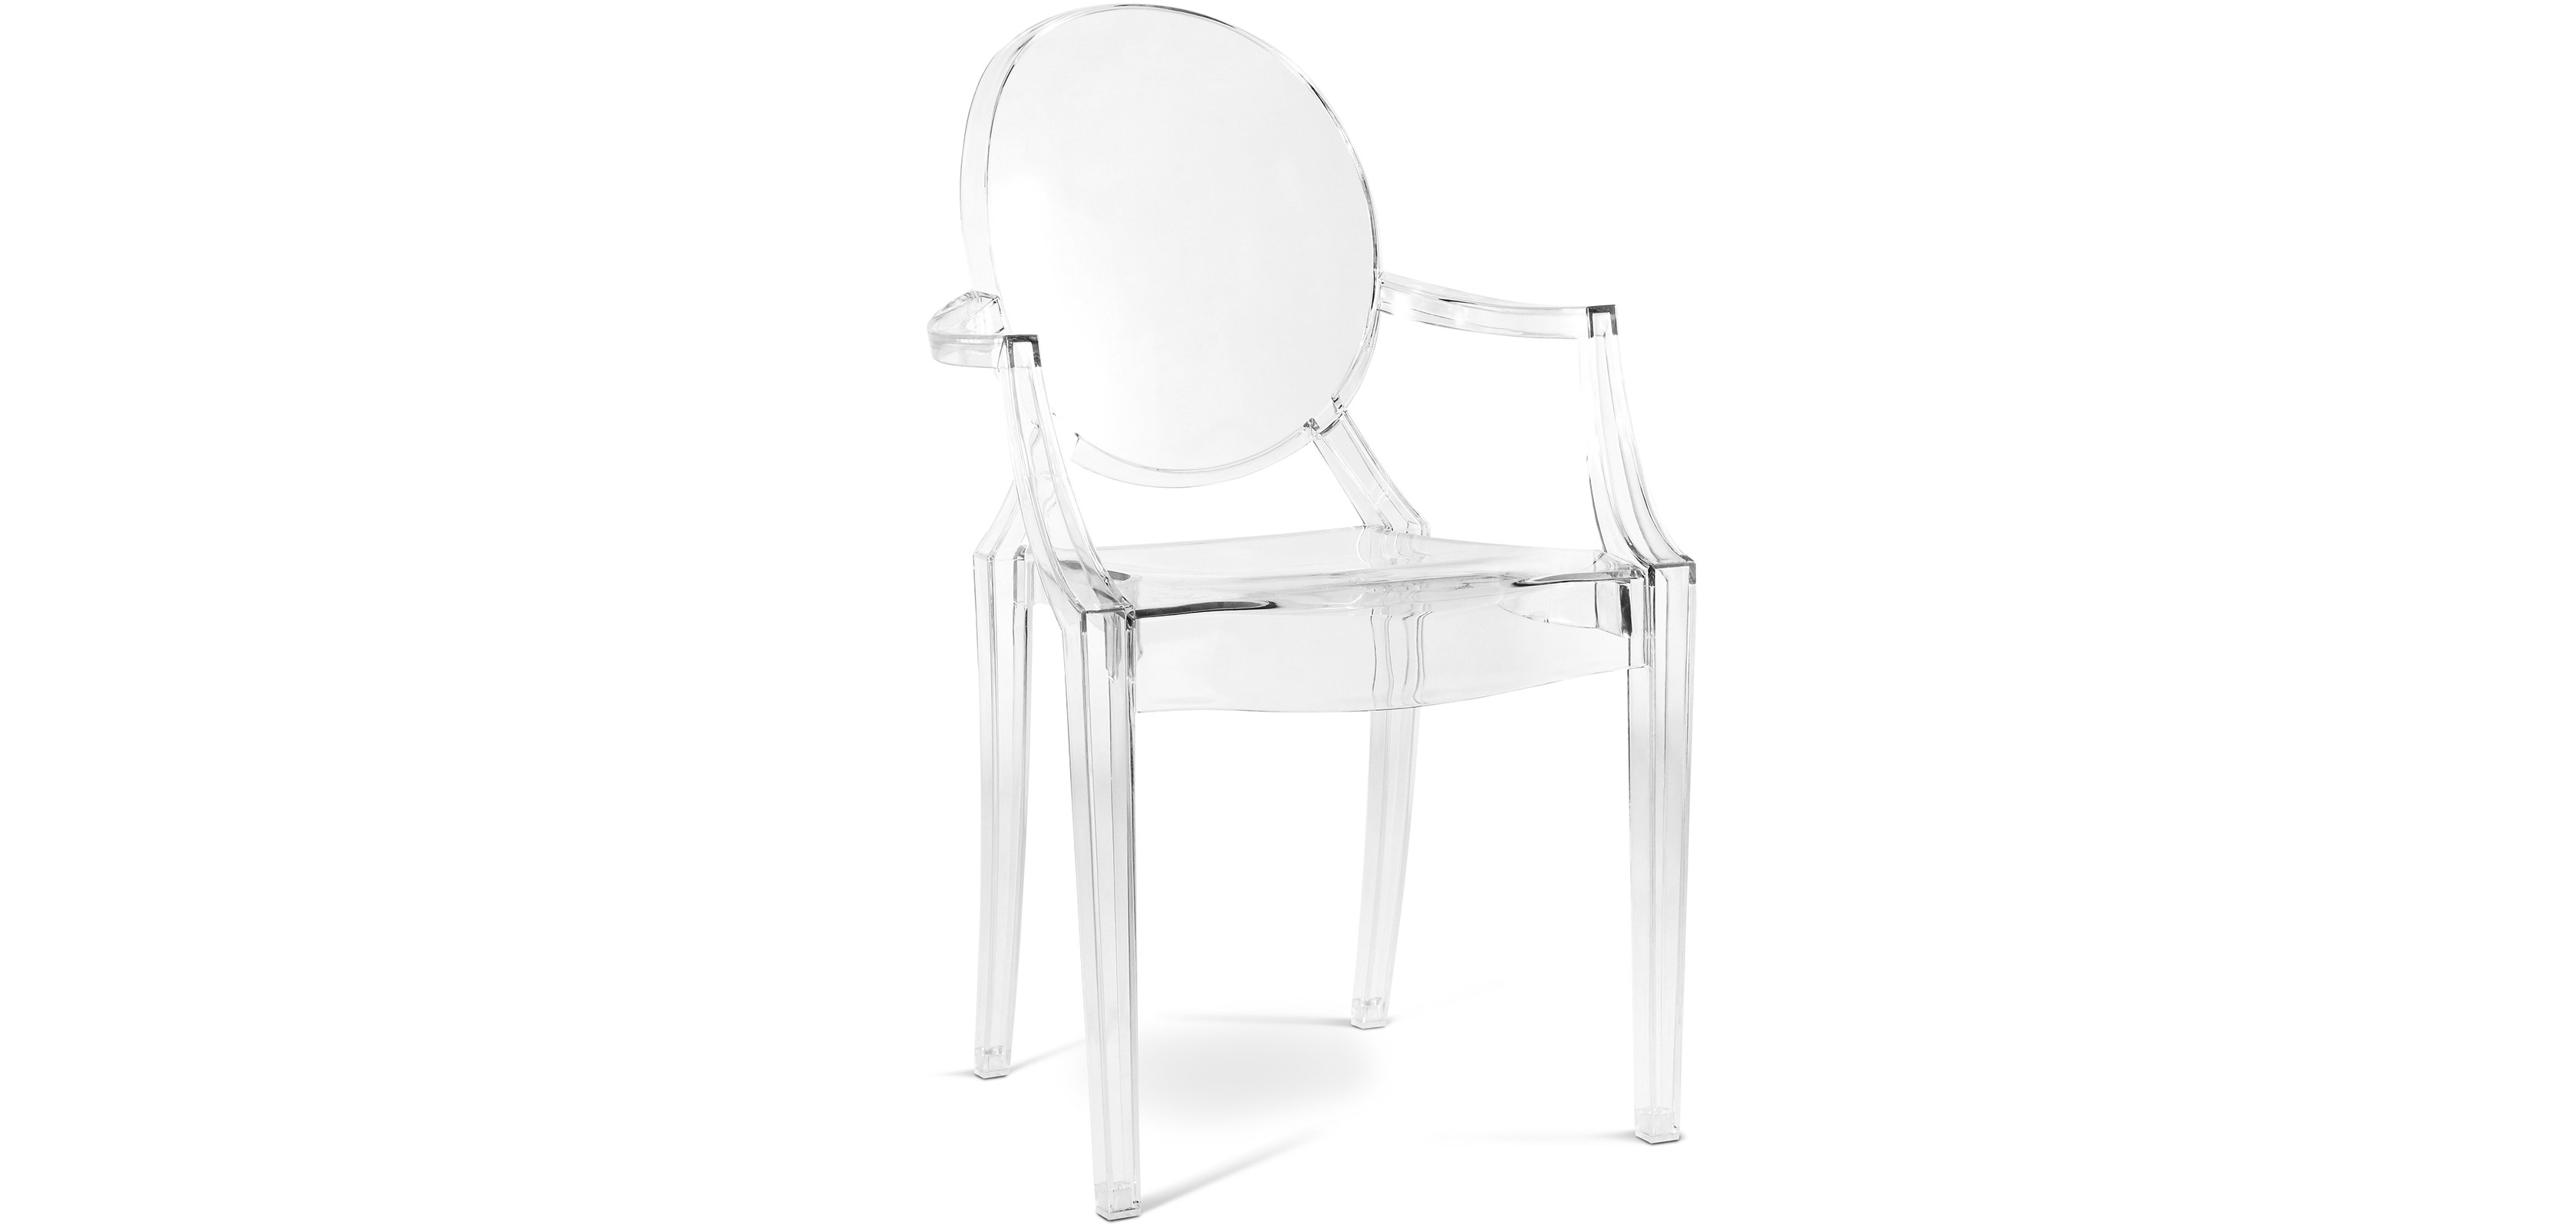 Fauteuil louis ghost philippe s style pas cher - Fauteuil louis ghost kartell pas cher ...